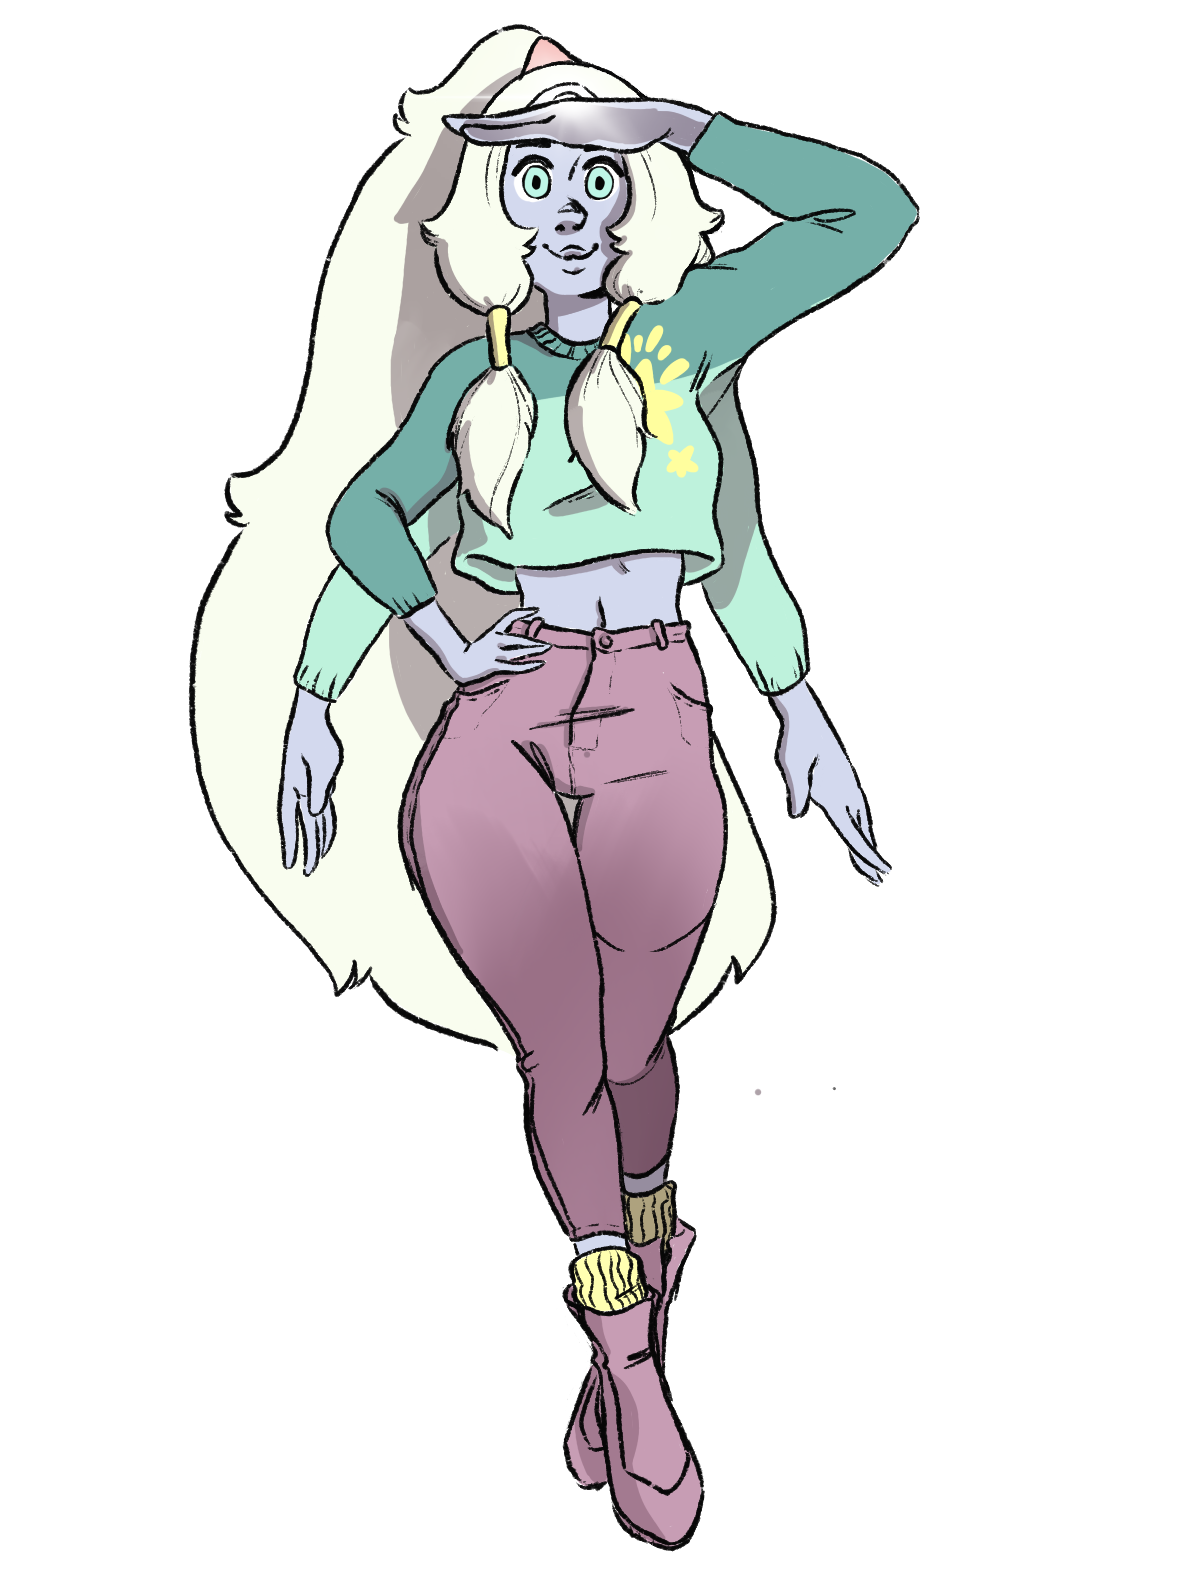 Opal in a snazzy outfit cause why noooot